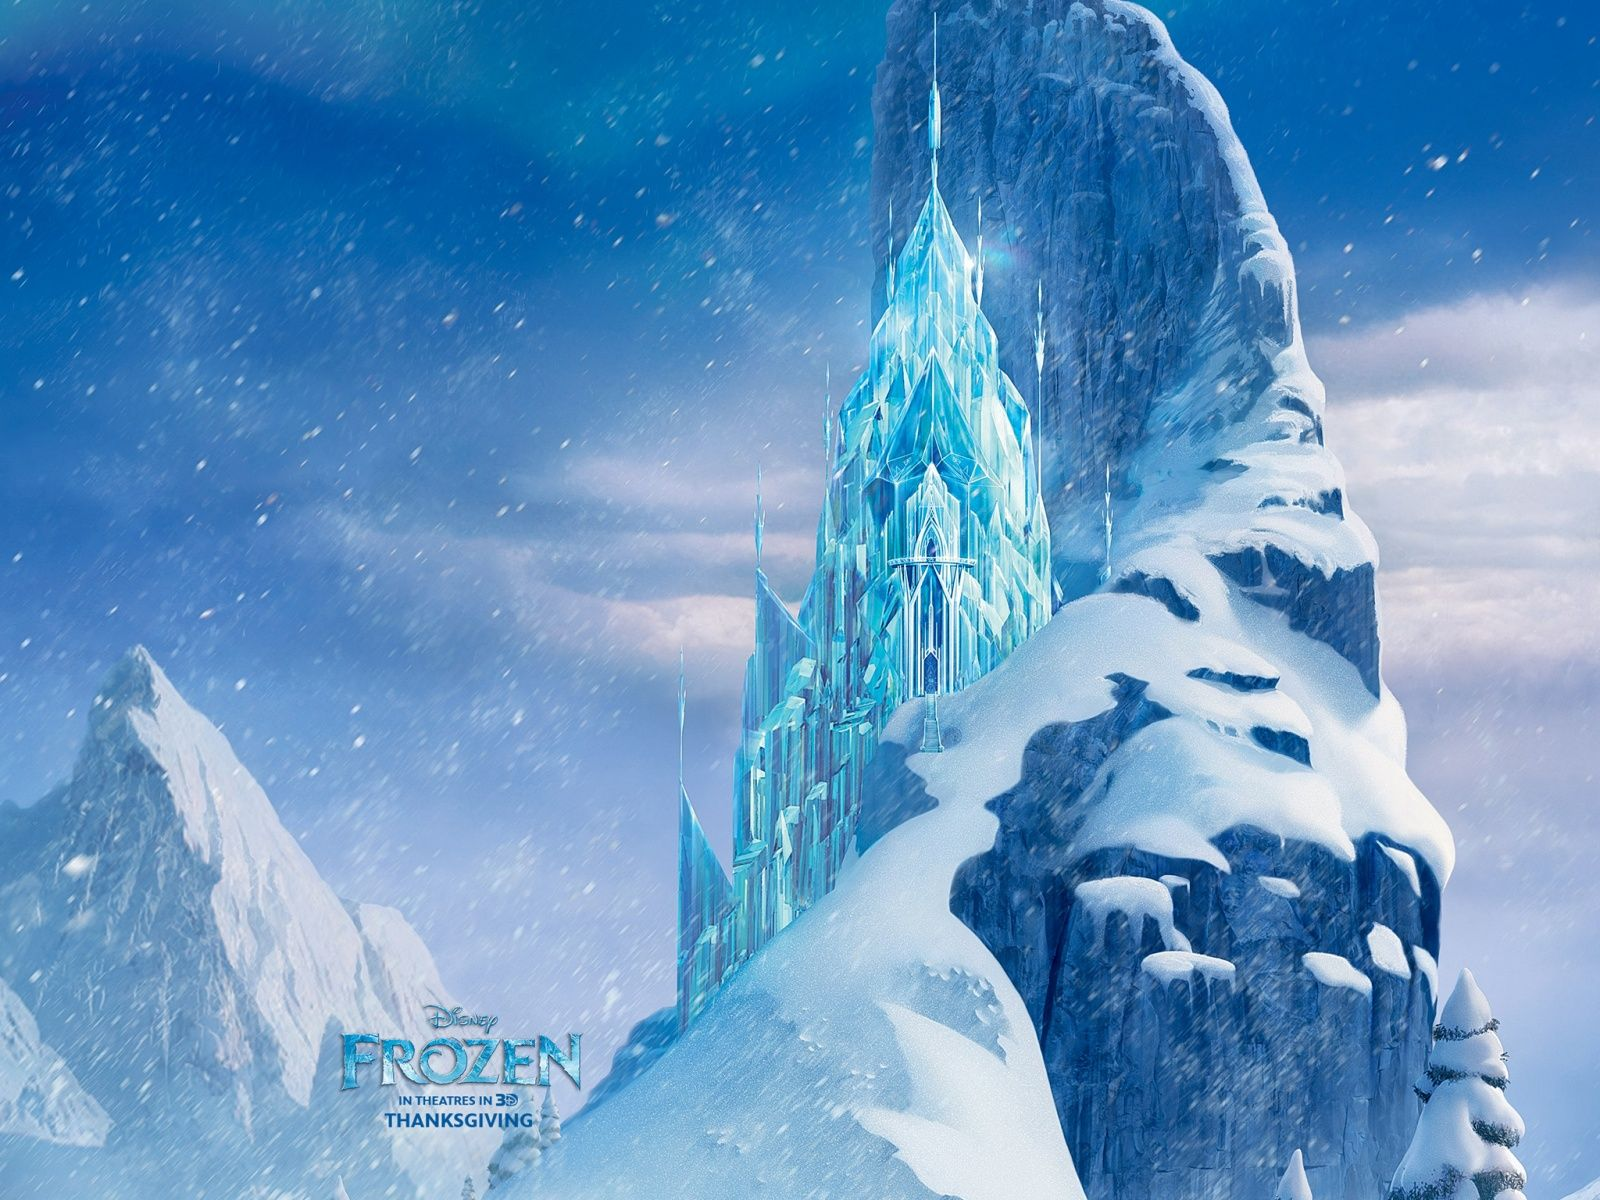 icecastle disney frozen movie hd wallpaper - Chateau De La Reine Des Neiges